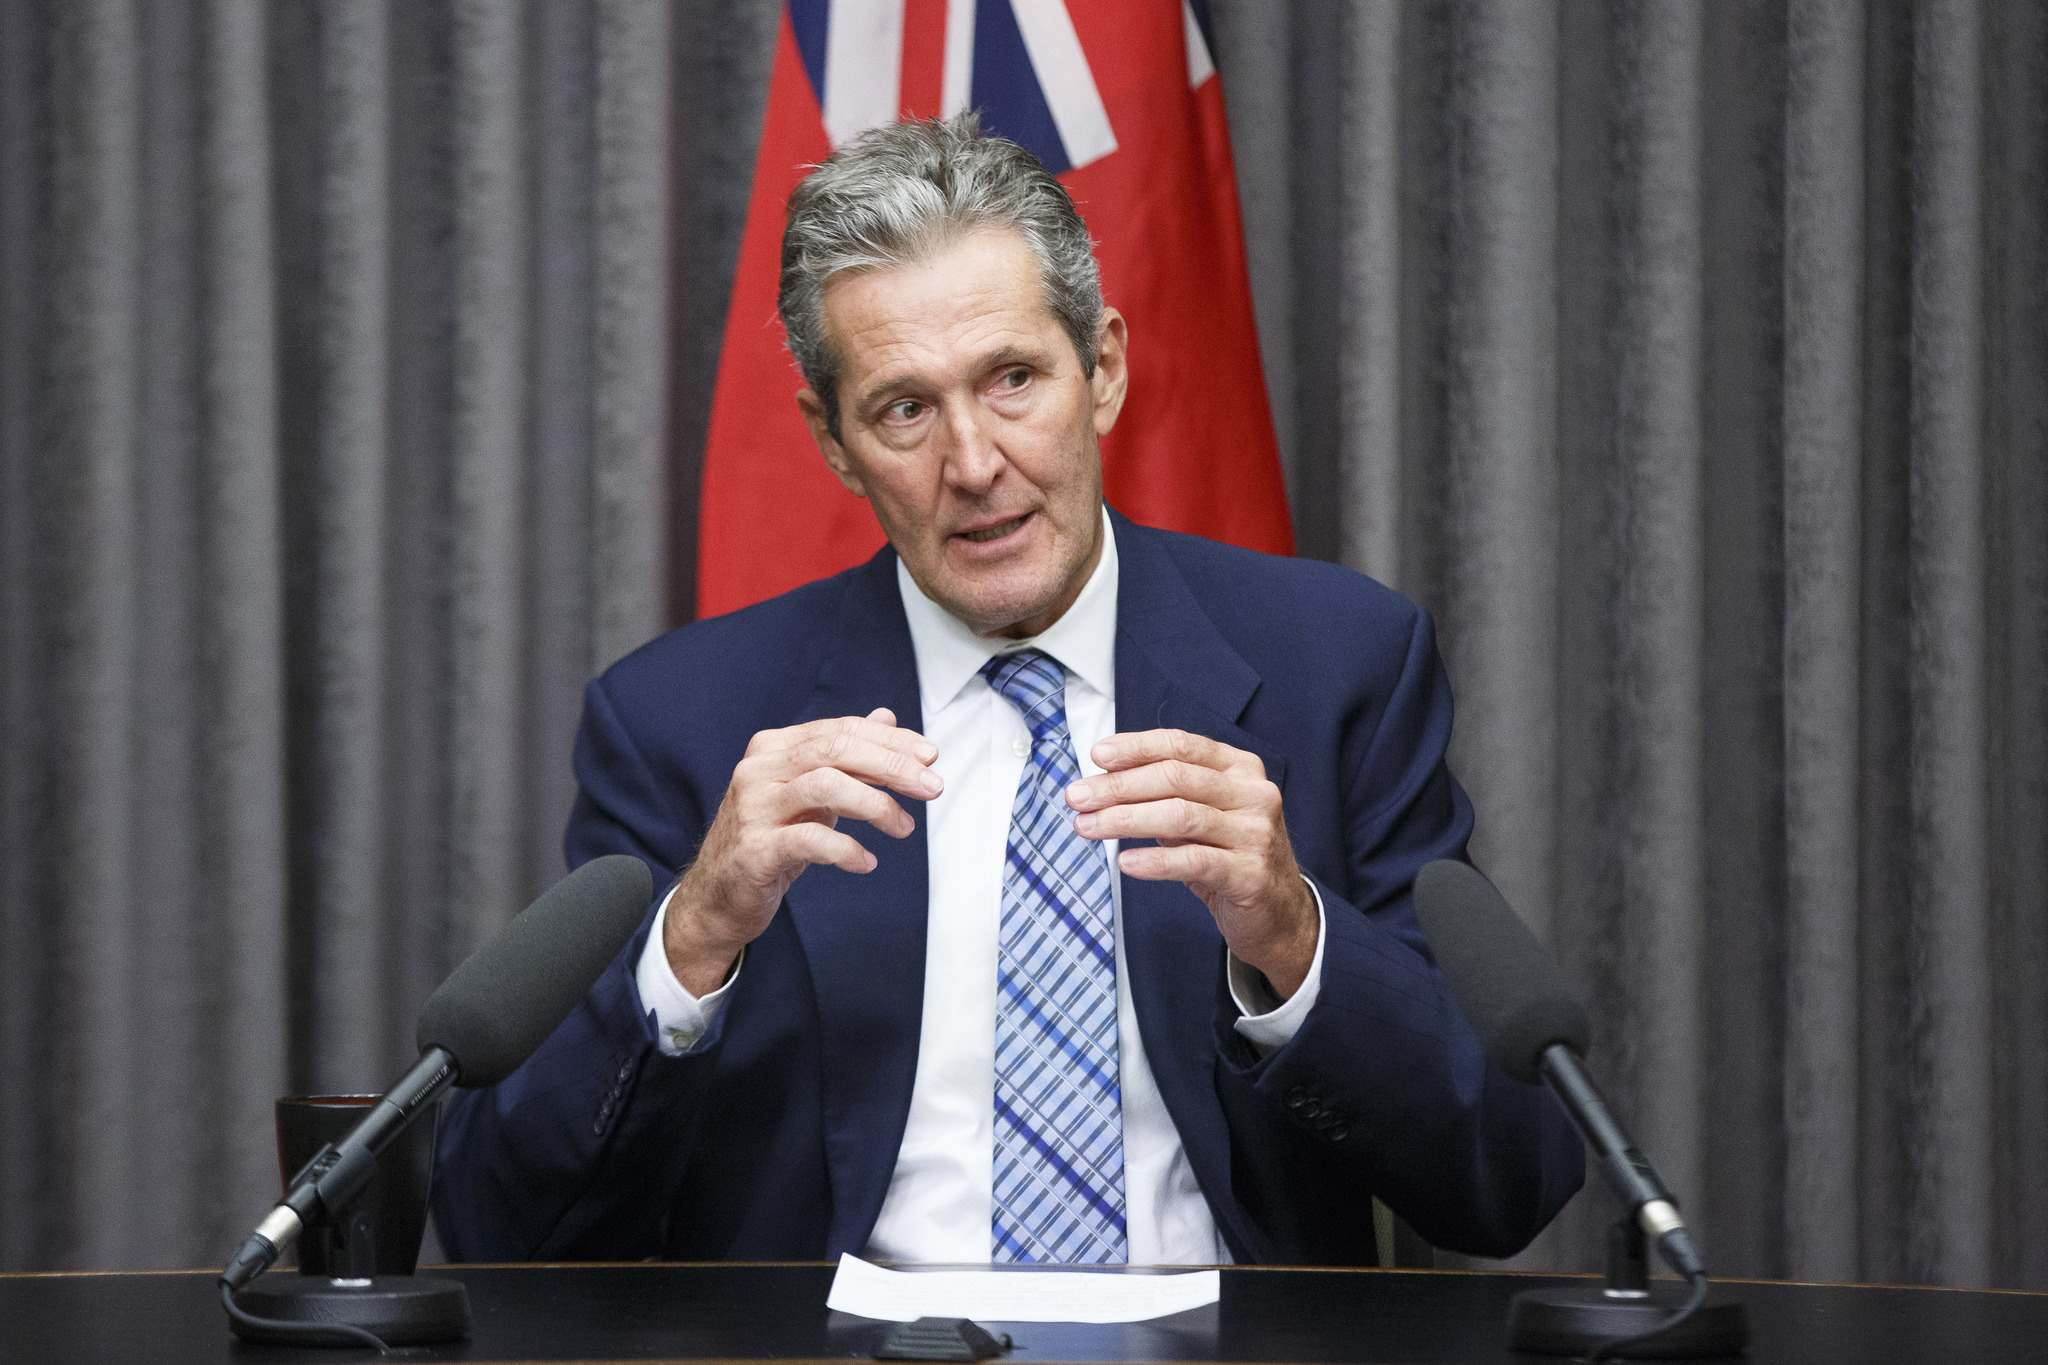 """Premier Brian Pallister disparaged the carbon tax as a """"hoax"""" last year, and more recently claimed the money is leaving Manitoba. (Mike Deal / Free Press files)"""